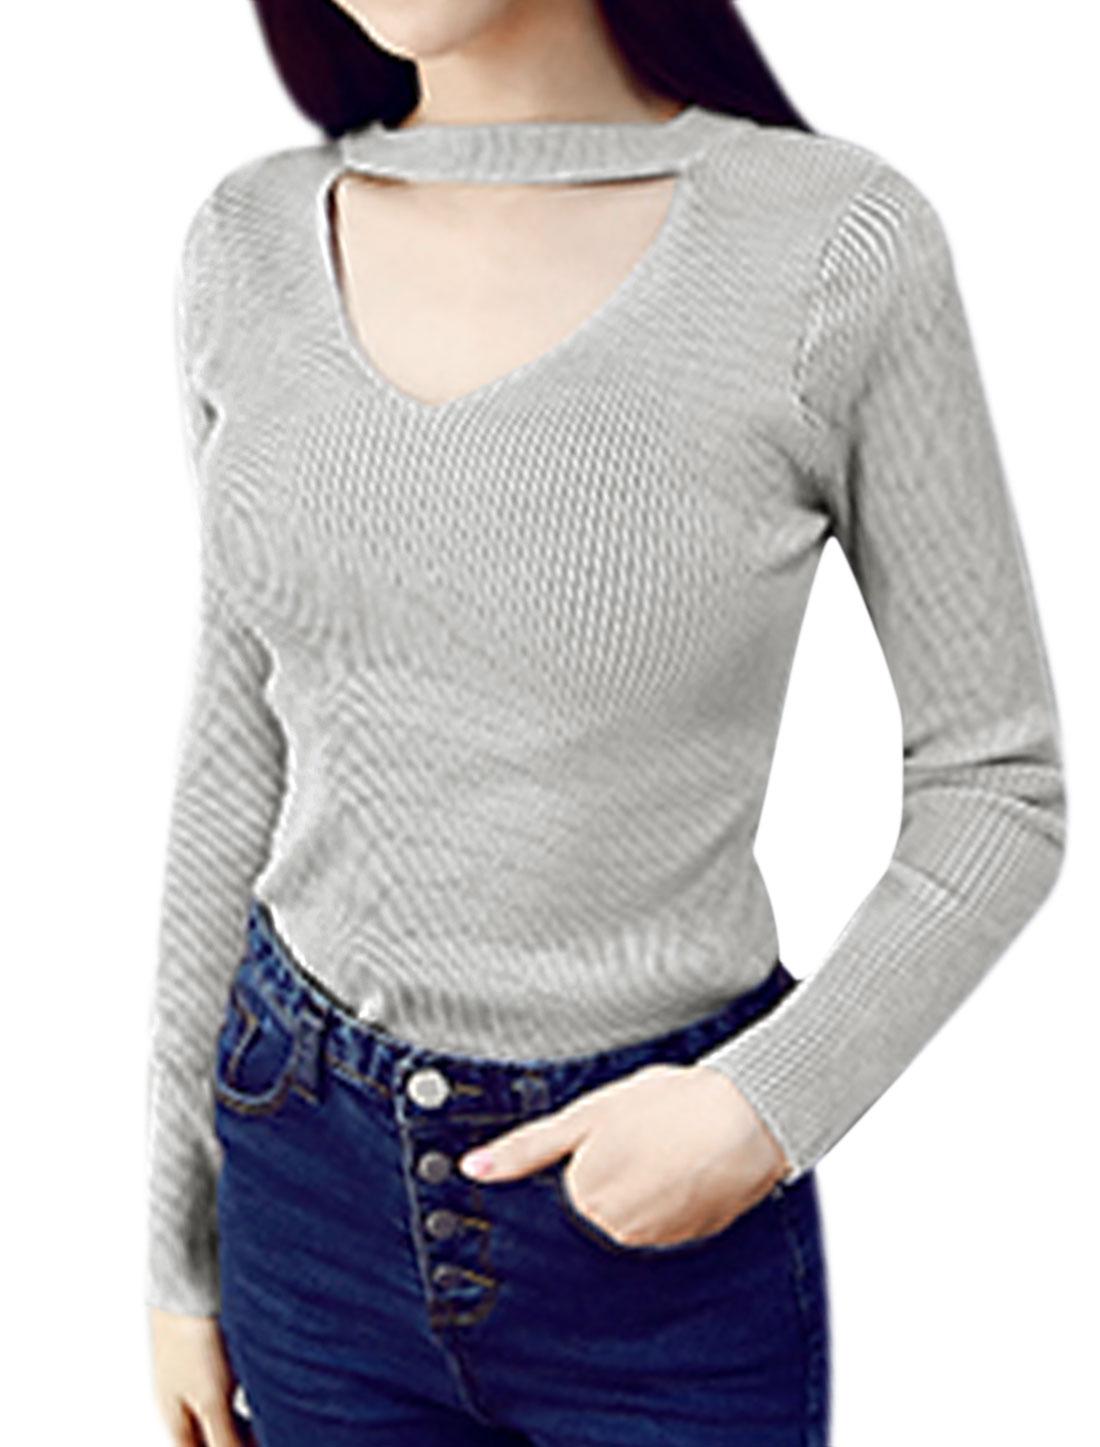 Women Crew Neck Long Sleeves Cut Out Ribbed Slim Fit Pullover Top Gray XS